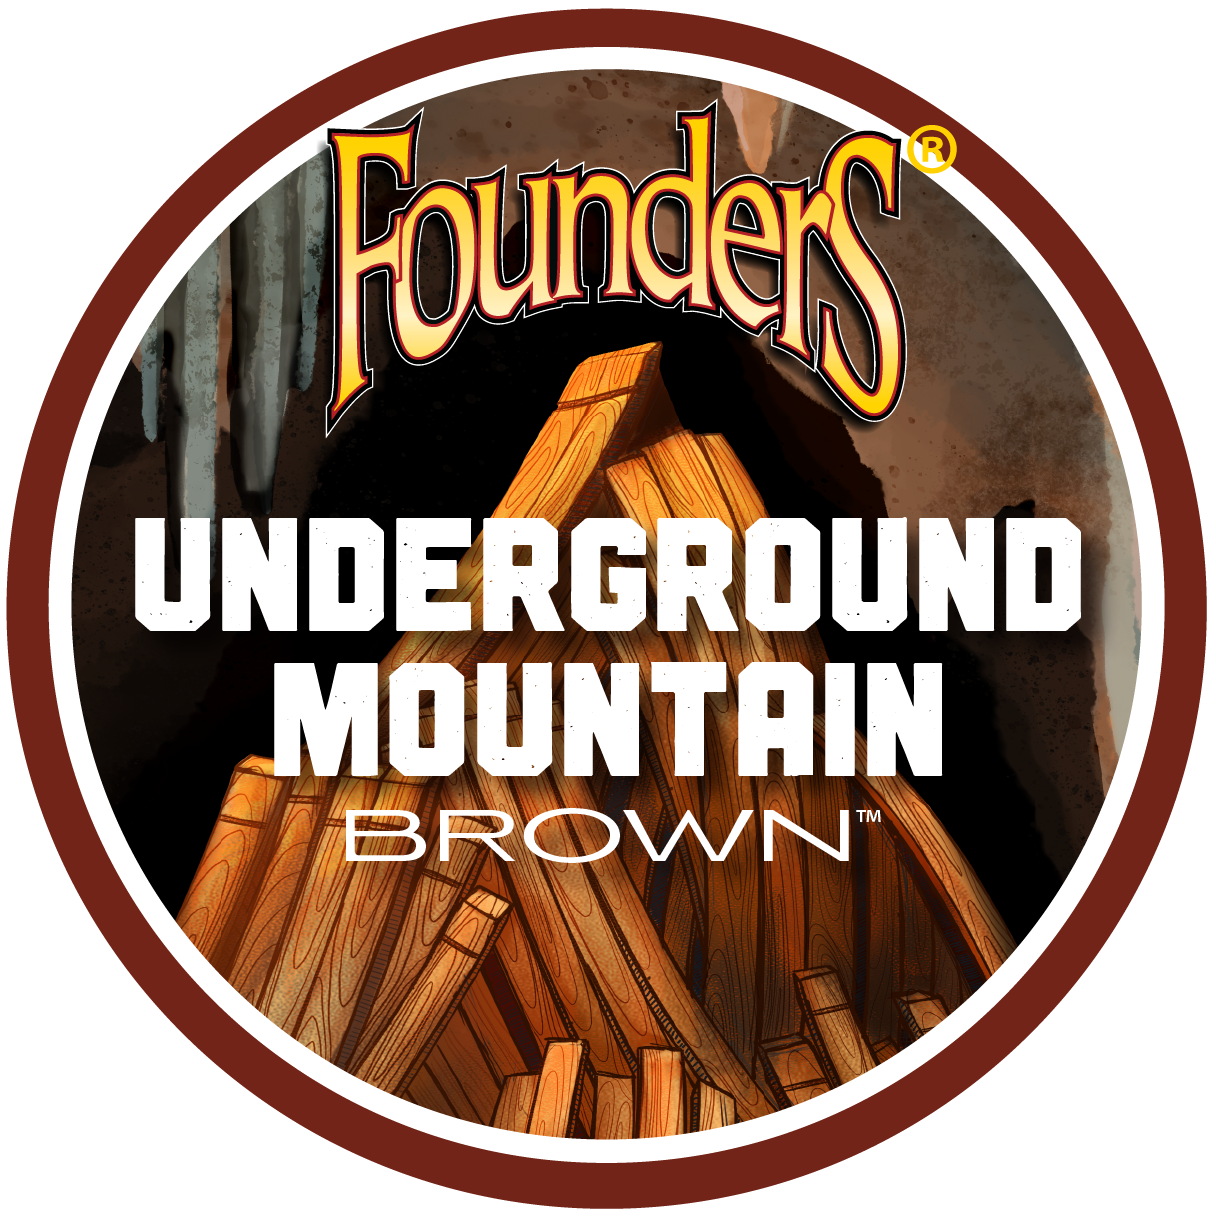 Founders Underground Mountain Brown logo